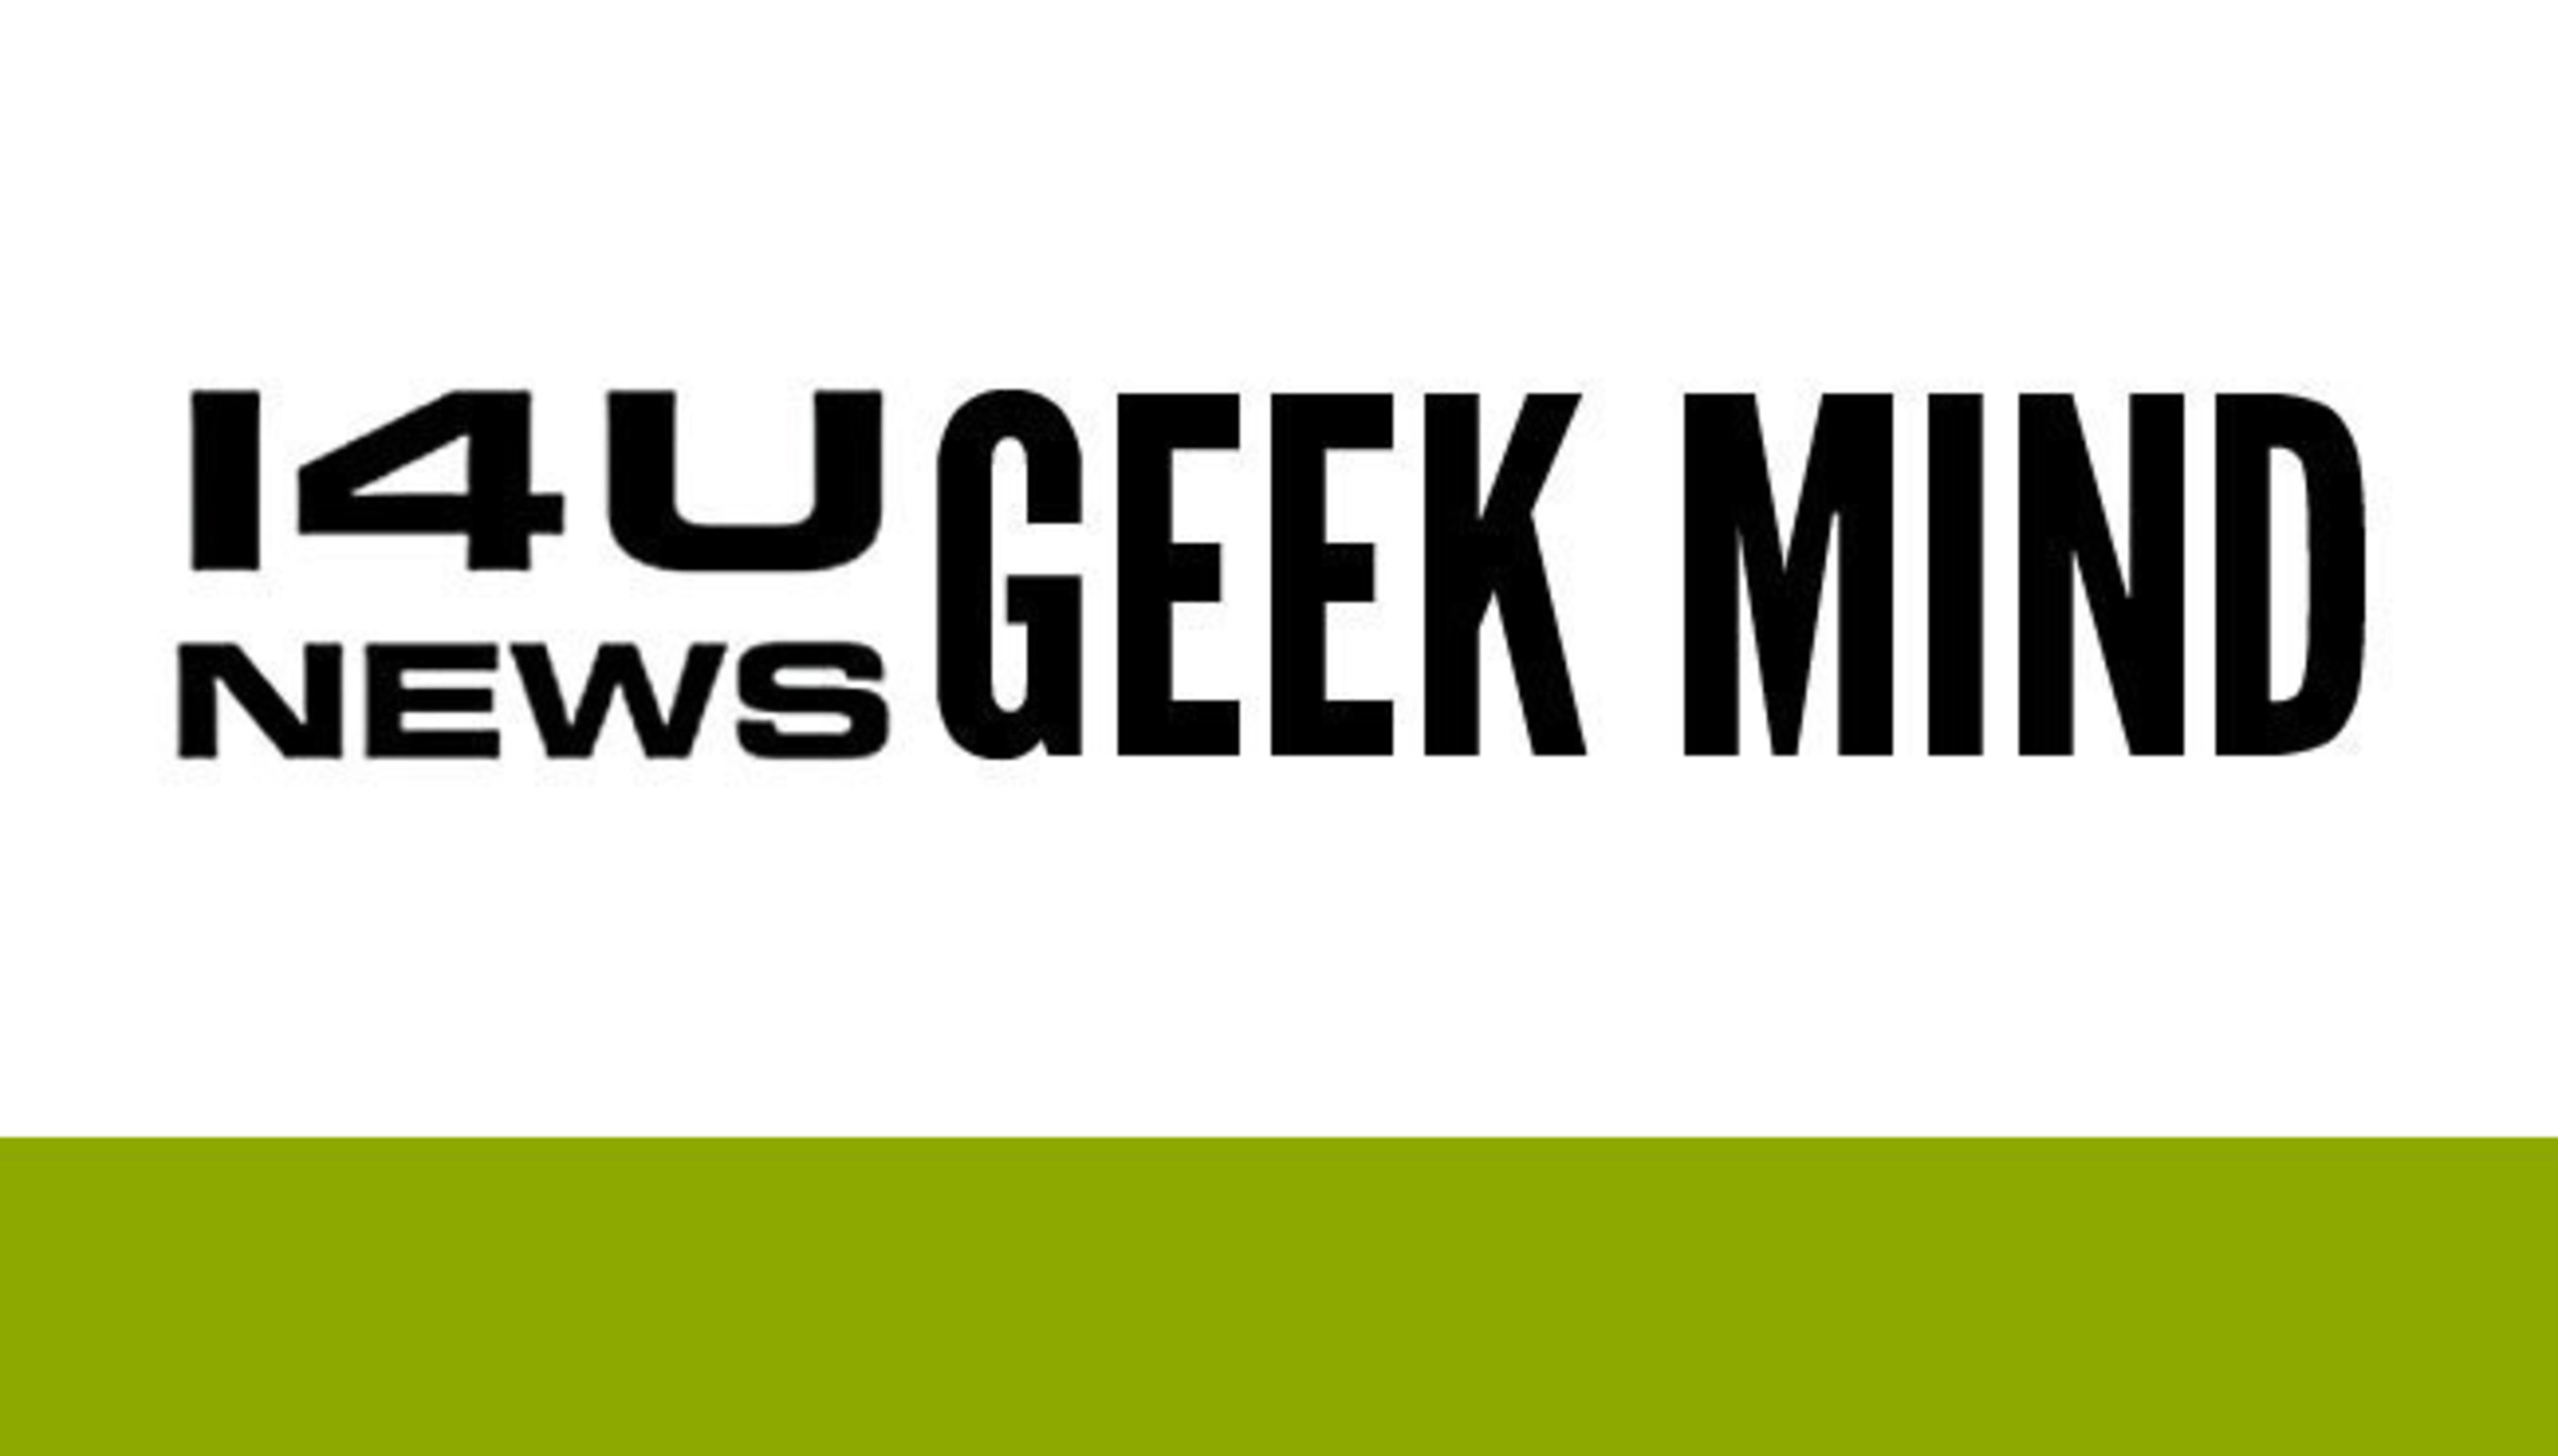 I4U News Launches Weekly 'Top on the Geek Mind' Rankings